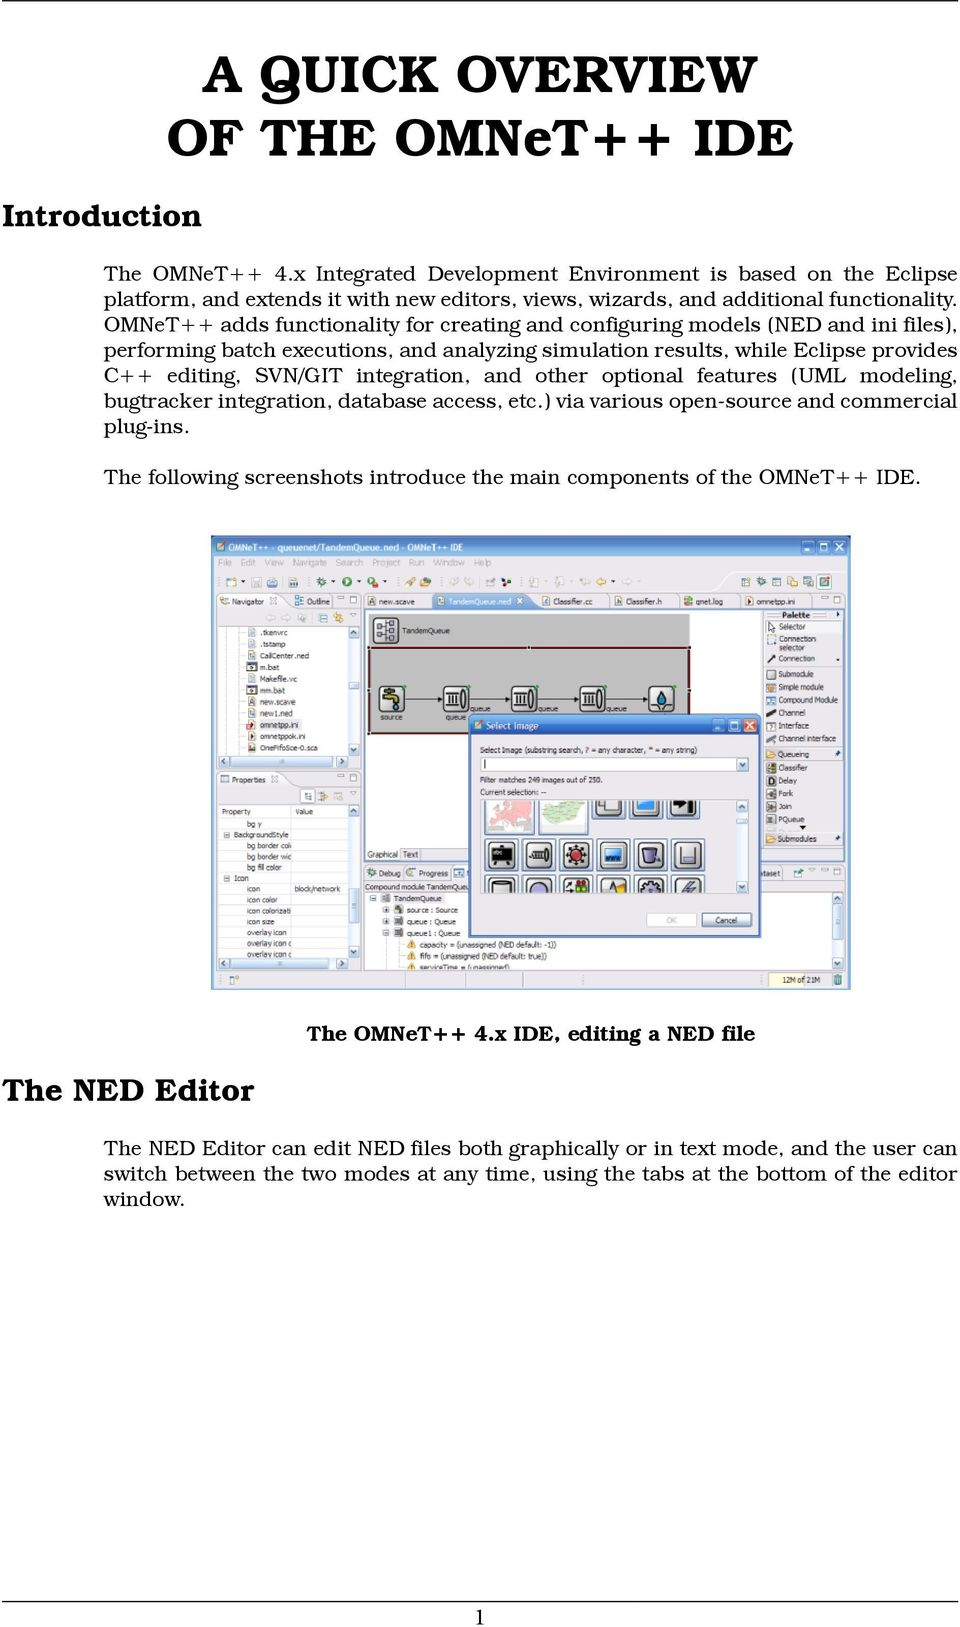 OMNeT++ adds functionality for creating and configuring models (NED and ini files), performing batch executions, and analyzing simulation results, while Eclipse provides C++ editing, SVN/GIT